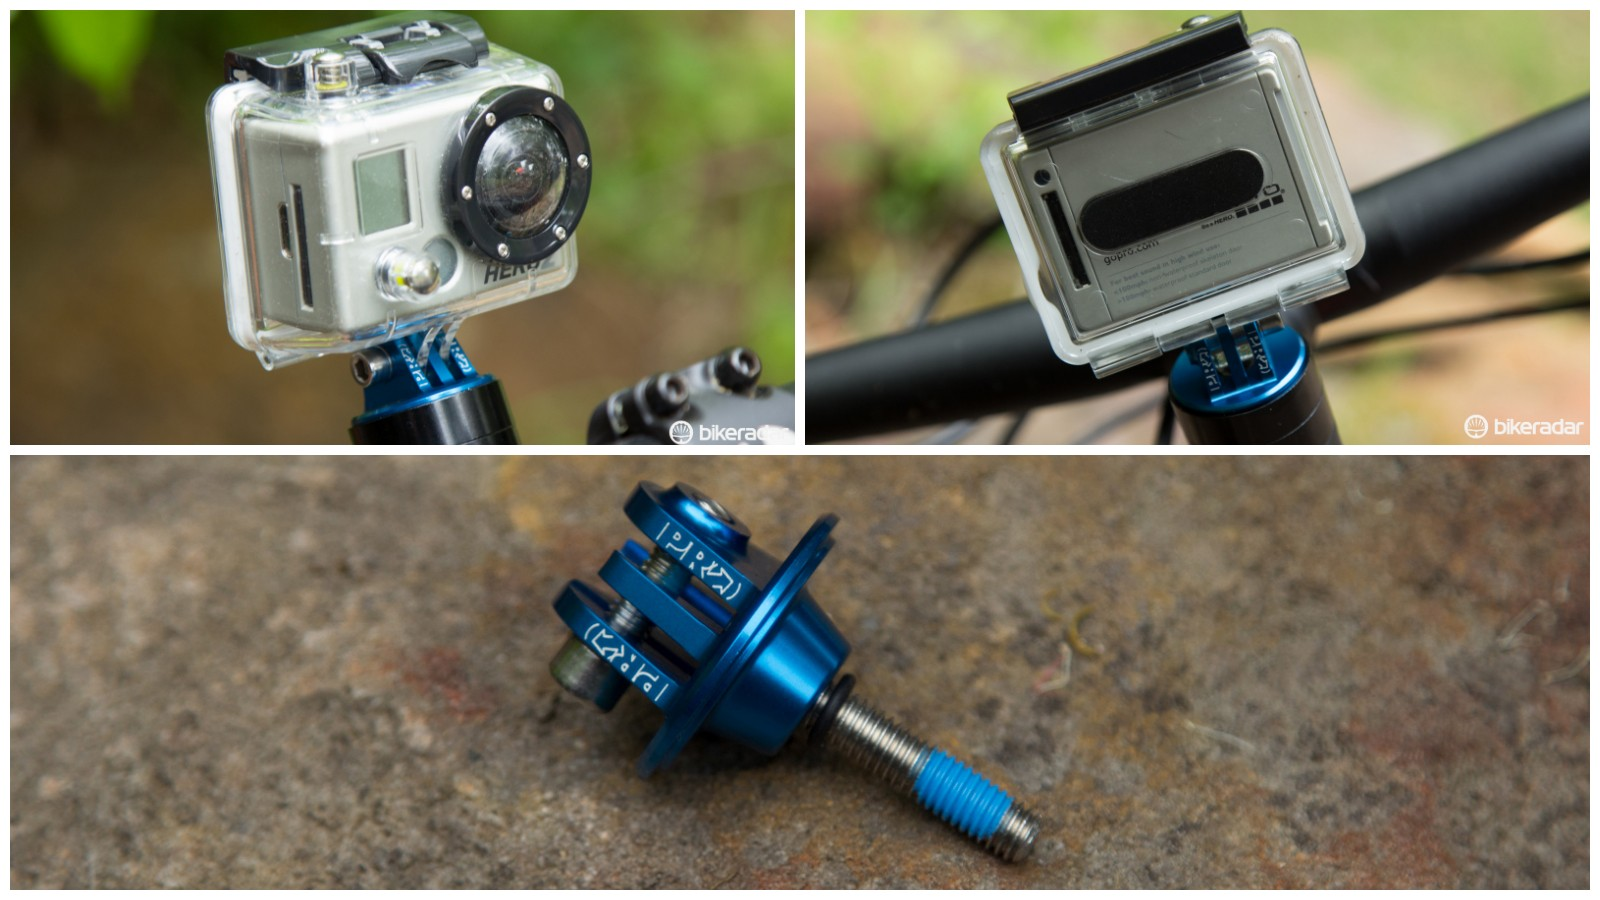 This item from PRO replaces a 1 1/8in threadless top cap with a Go-Pro type camera mount. Clever